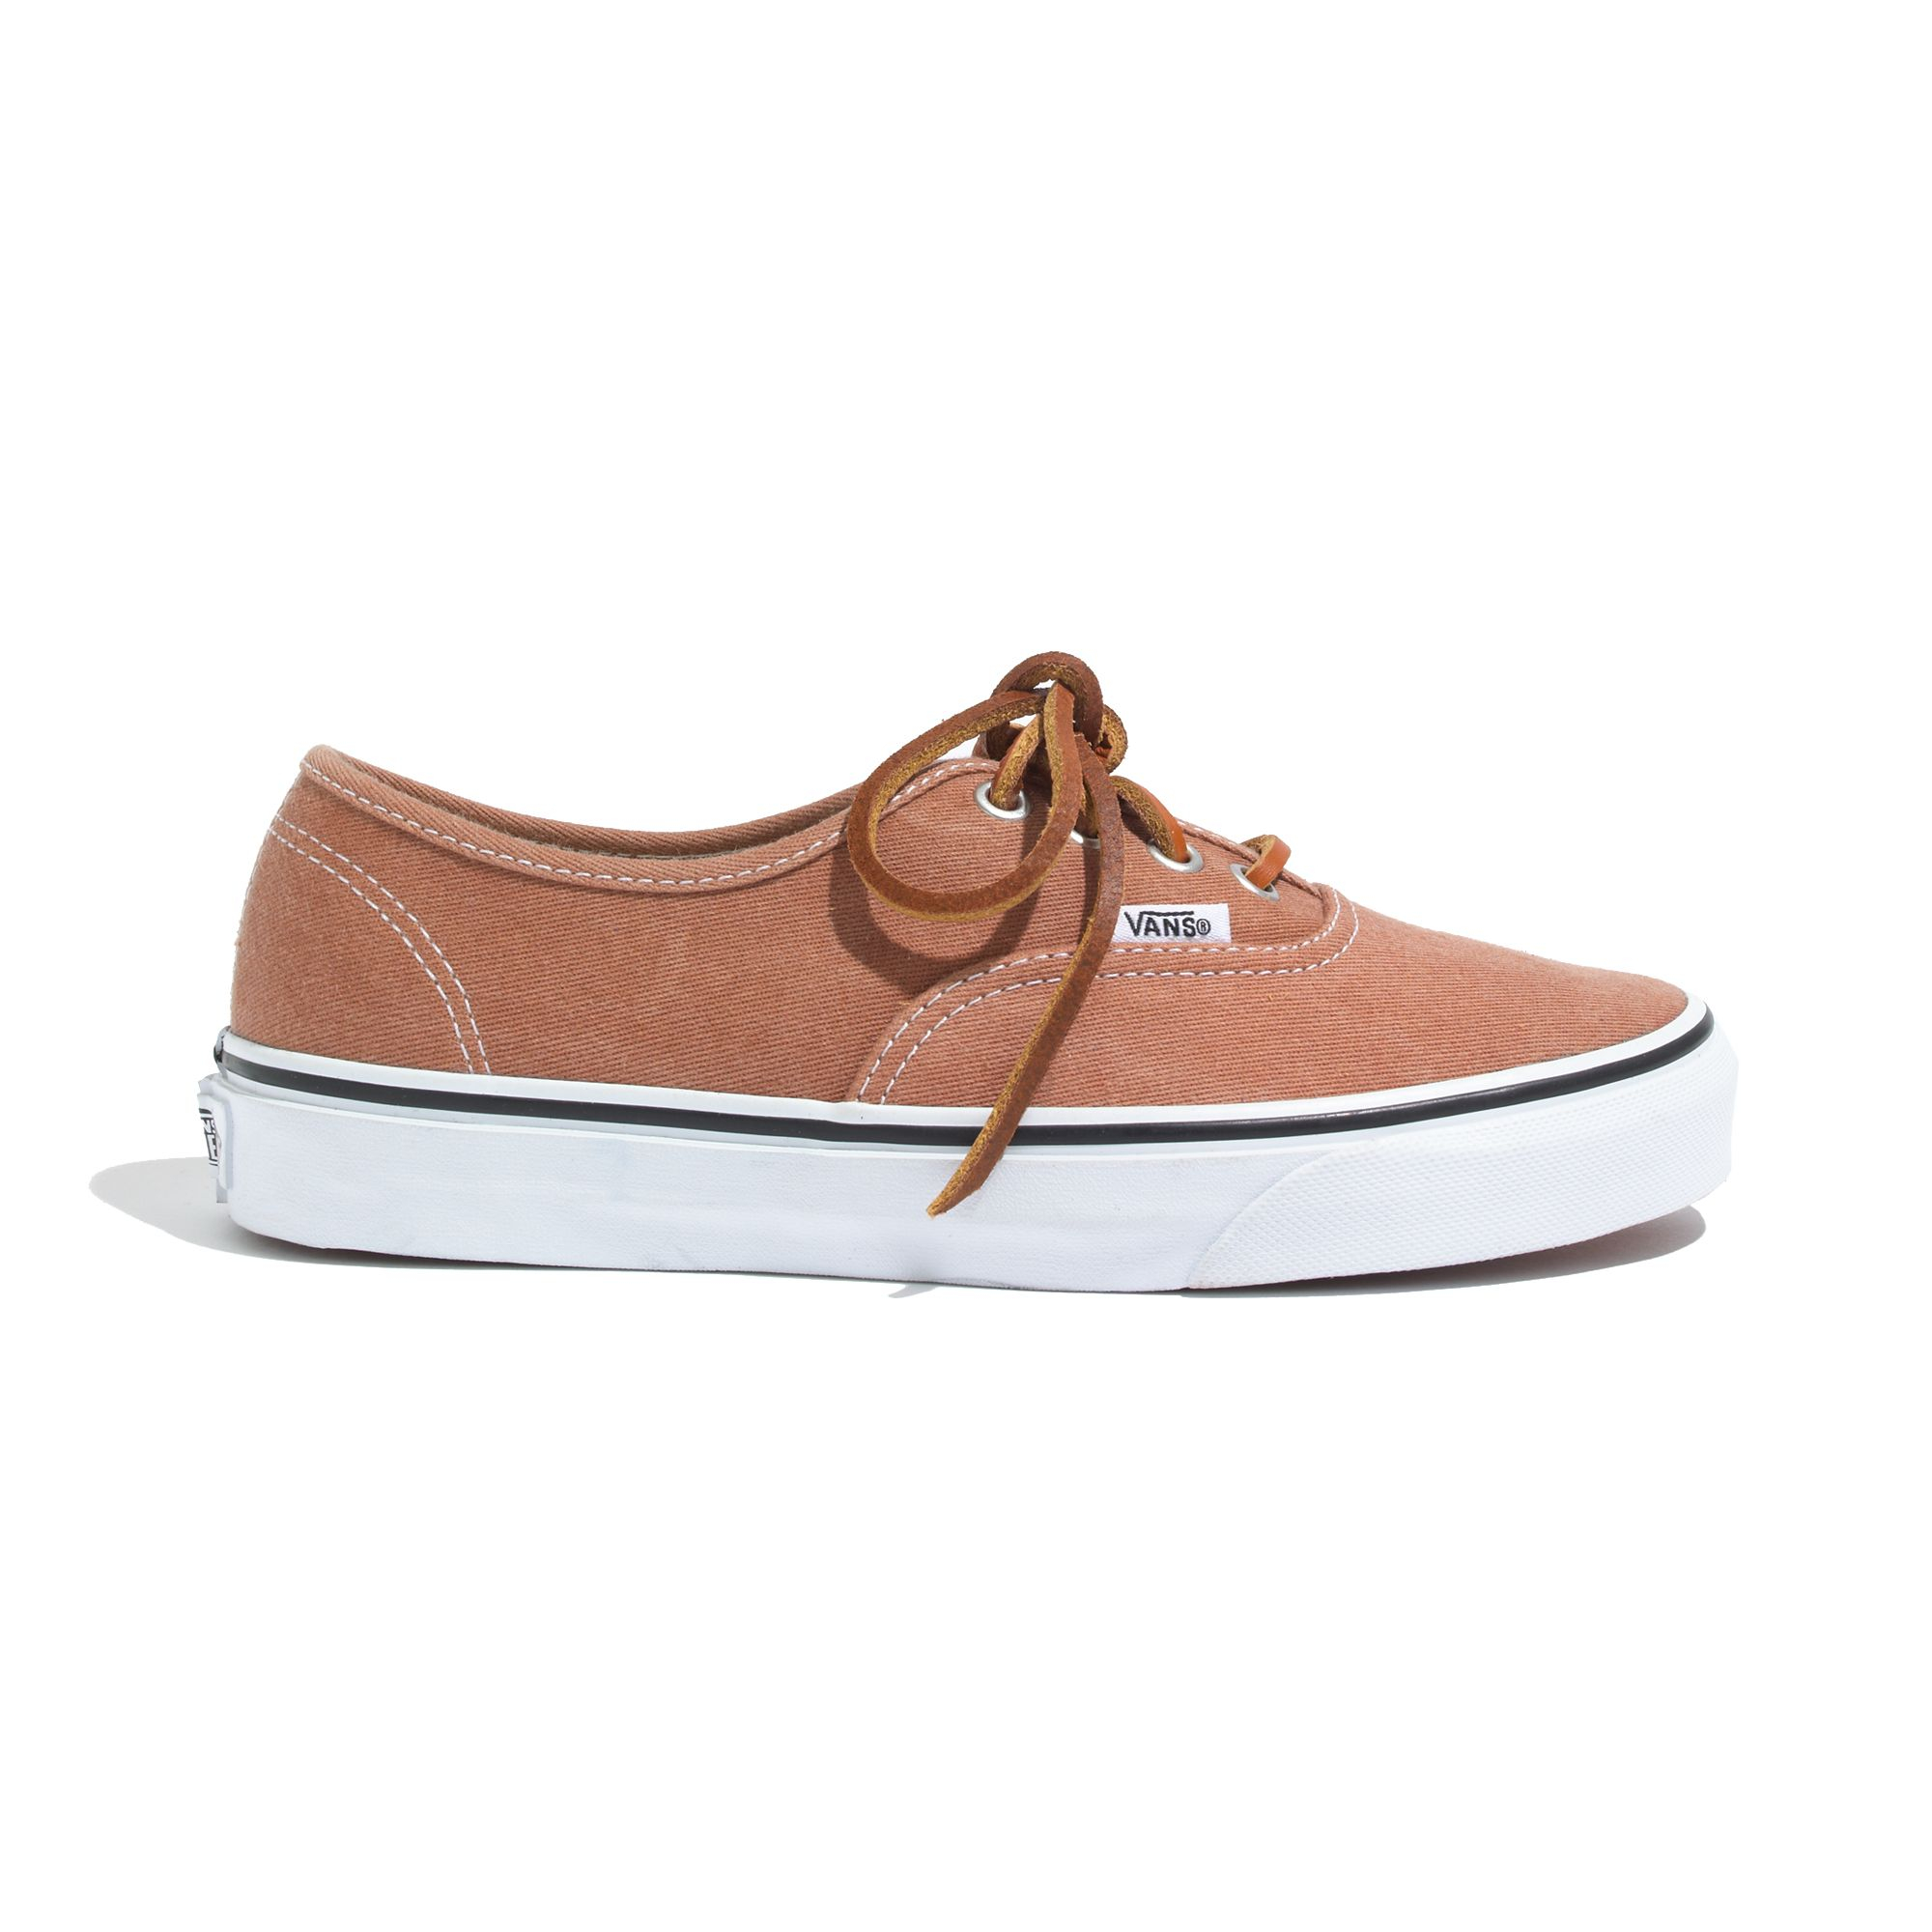 Madewell Vans&Reg; Authentic Brushed Twill Sneakers in Rust (Natural)